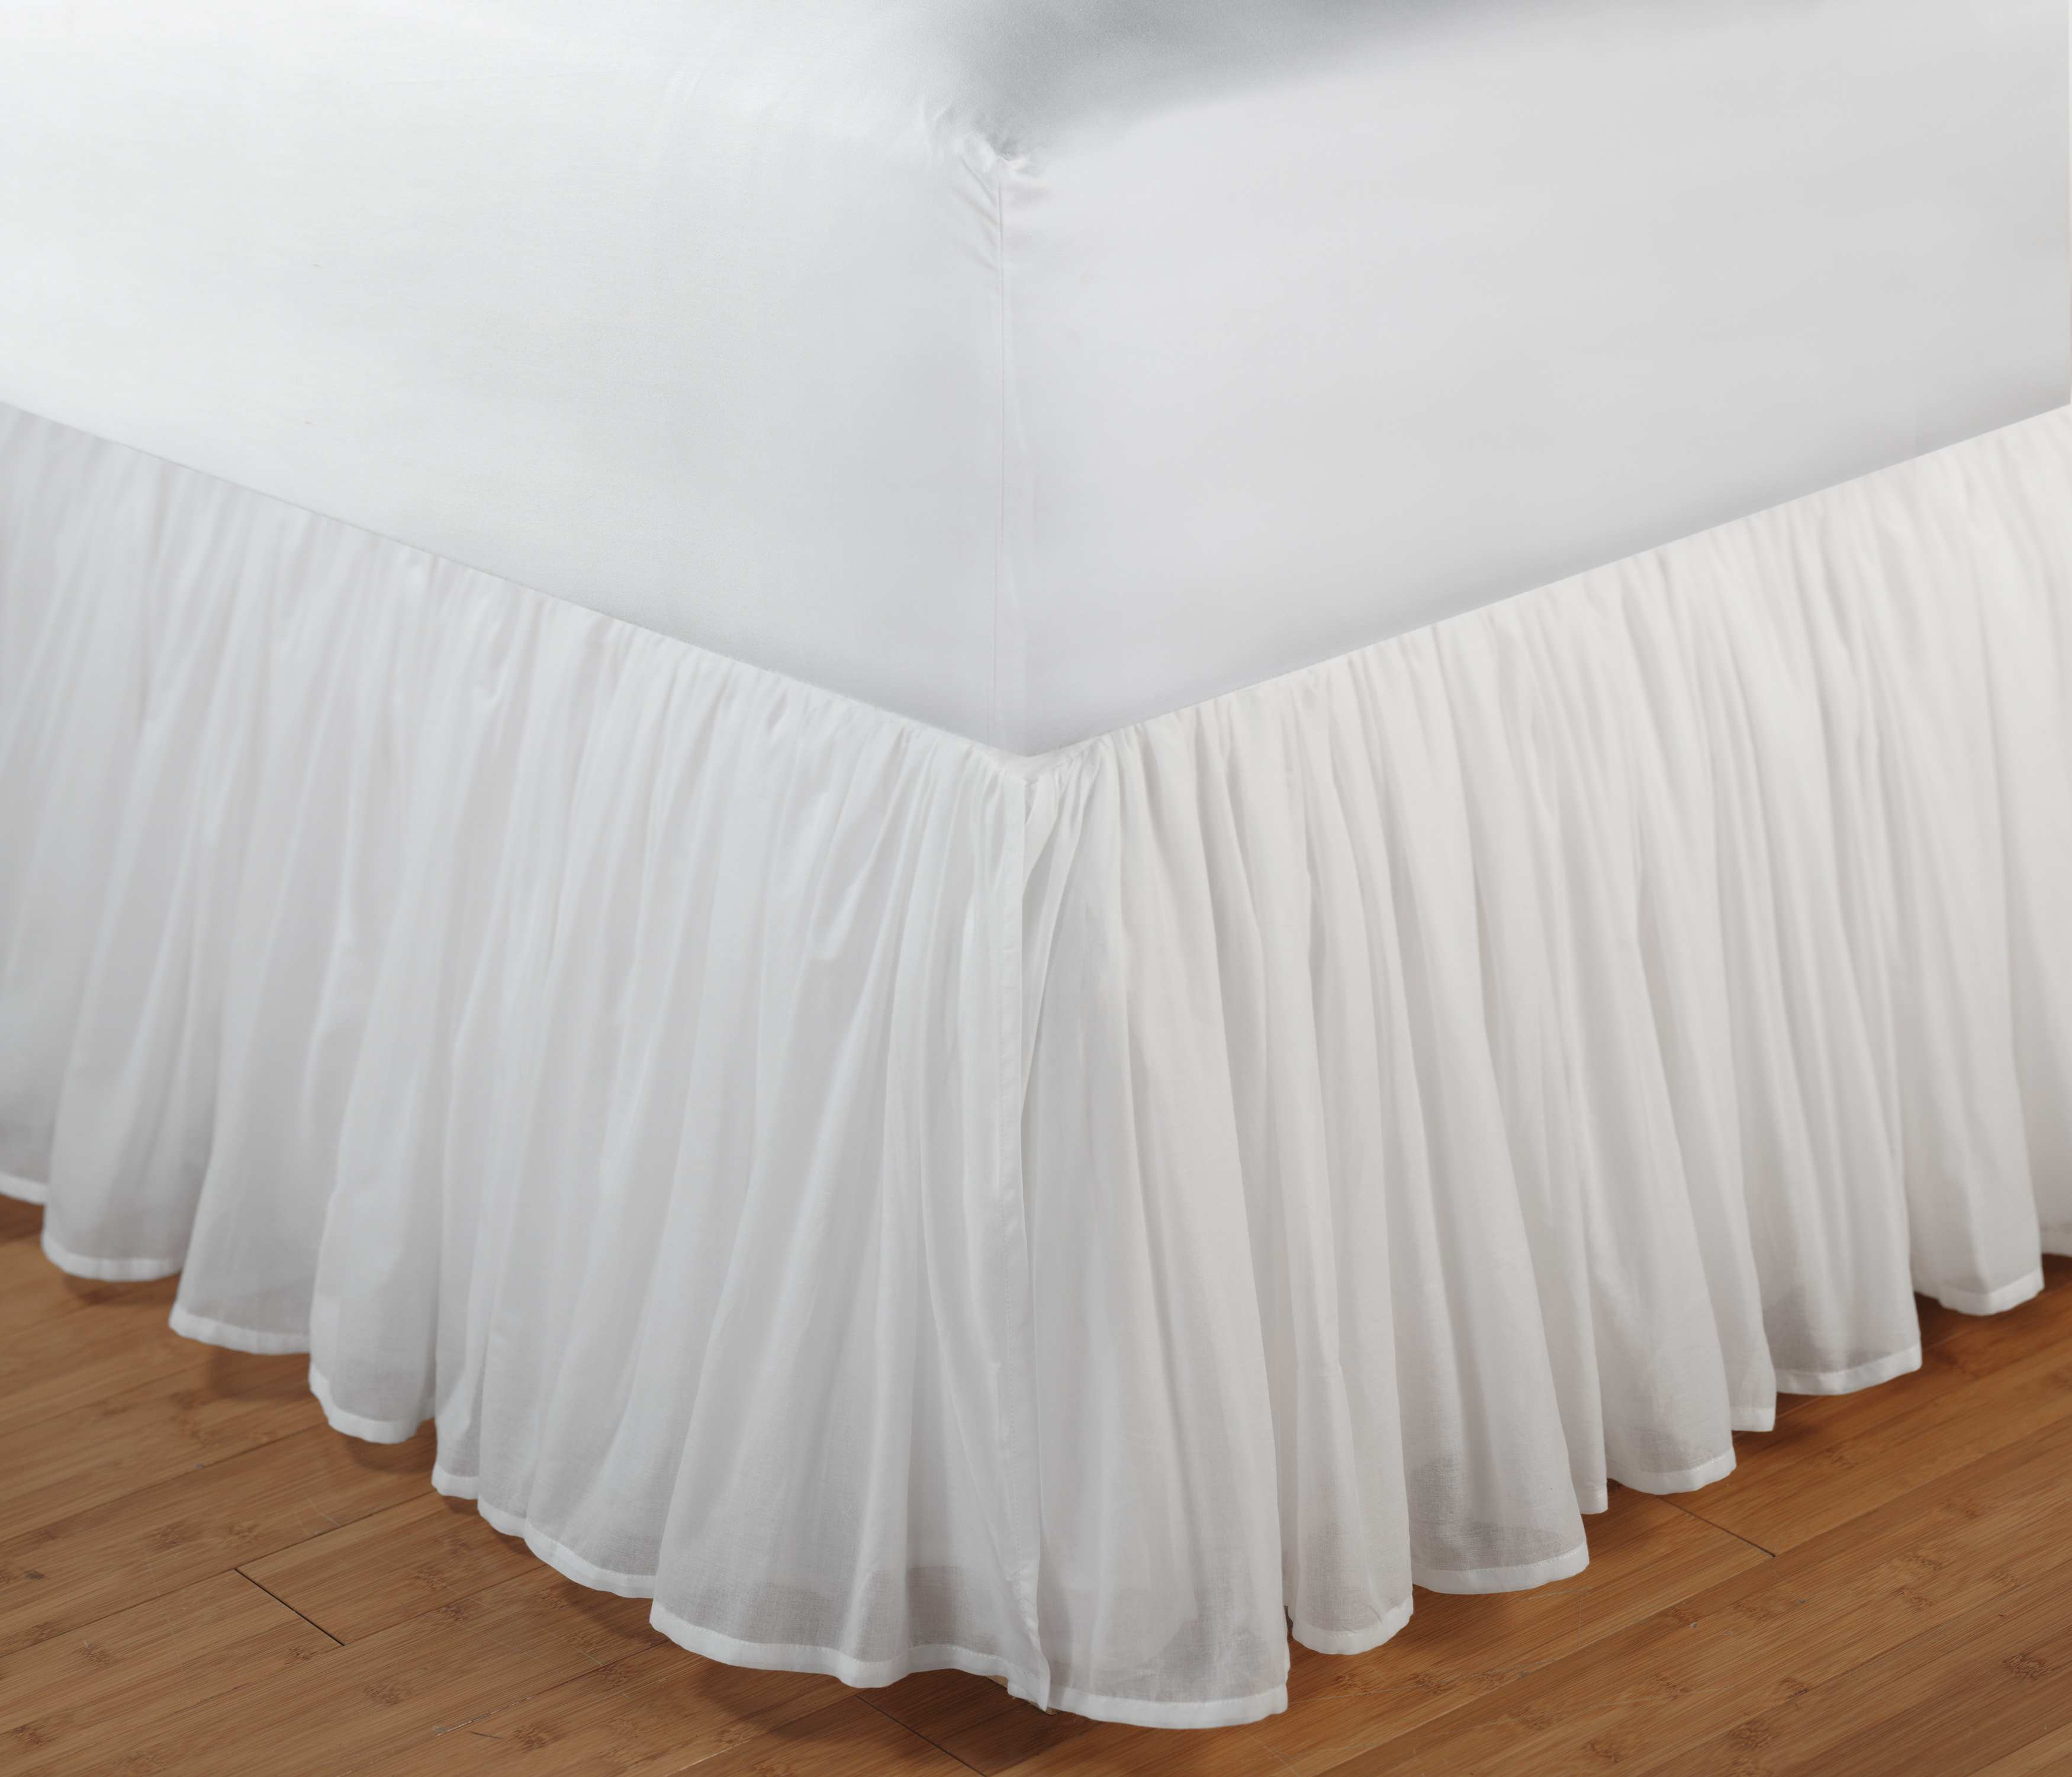 Cotton Voile White Bed Skirt 18 Full